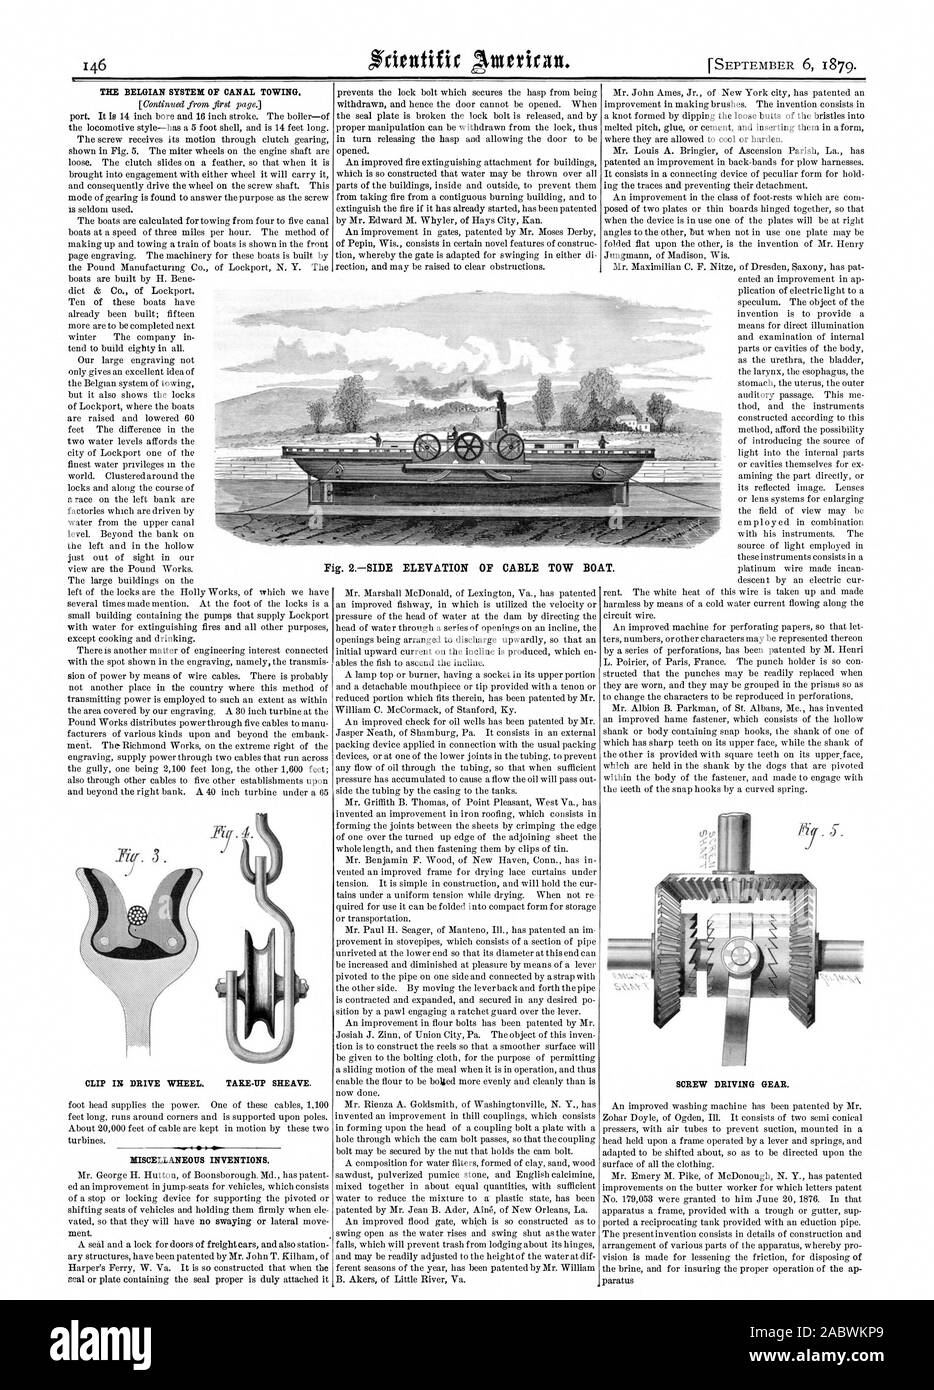 THE BELGIAN SYSTEM OF CANAL TOWING. CLIP IN DRIVE WHEEL. TARE-UP SHEAVE. MISCELLANEOUS INVENTIONS. SCREW DRIVING GEAR. Fig. 2SIDE ELEVATION OF CABLE TOW BOAT., scientific american, 1879-09-06 Stock Photo